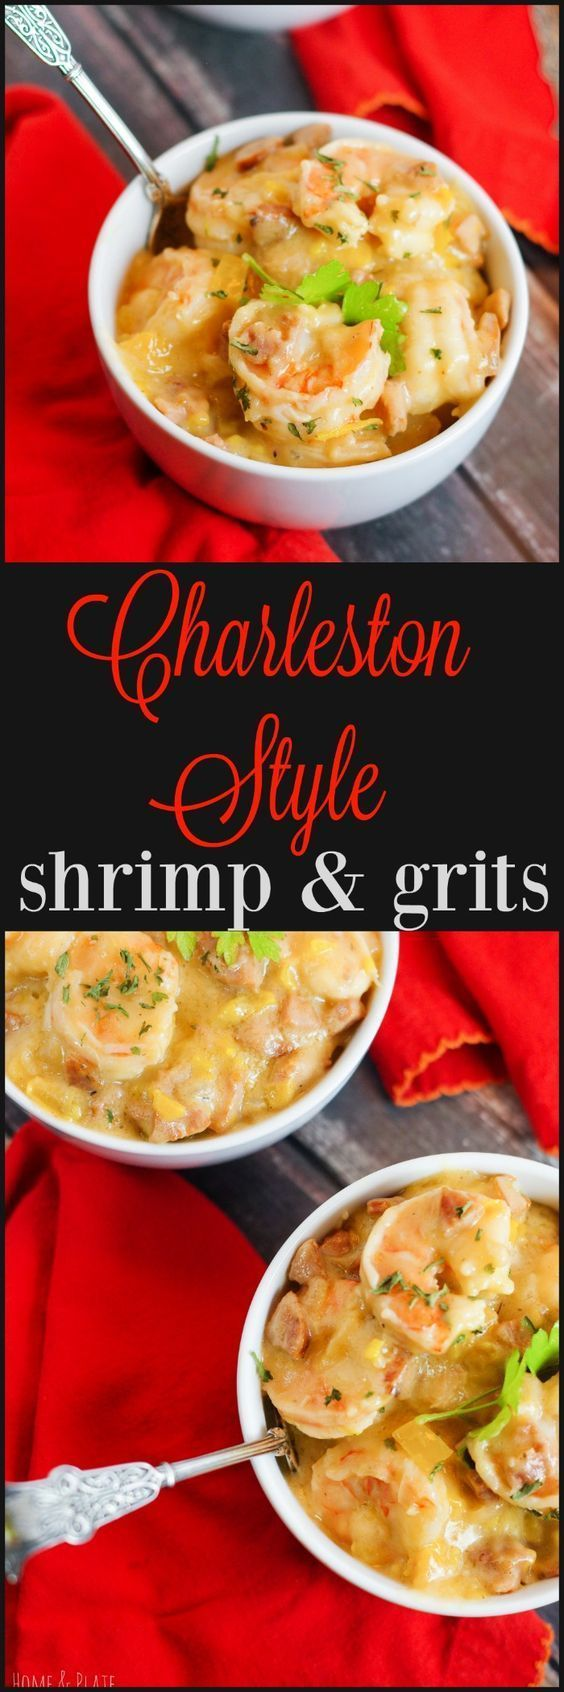 Charleston Style Shrimp & Grits | www.homeandplate.com | The shrimp is pink and tender, the course grits are creamy and cheesy and the heat from the andouille sausage will warm your belly. #seafoodrecipes #charlestoncheesedips